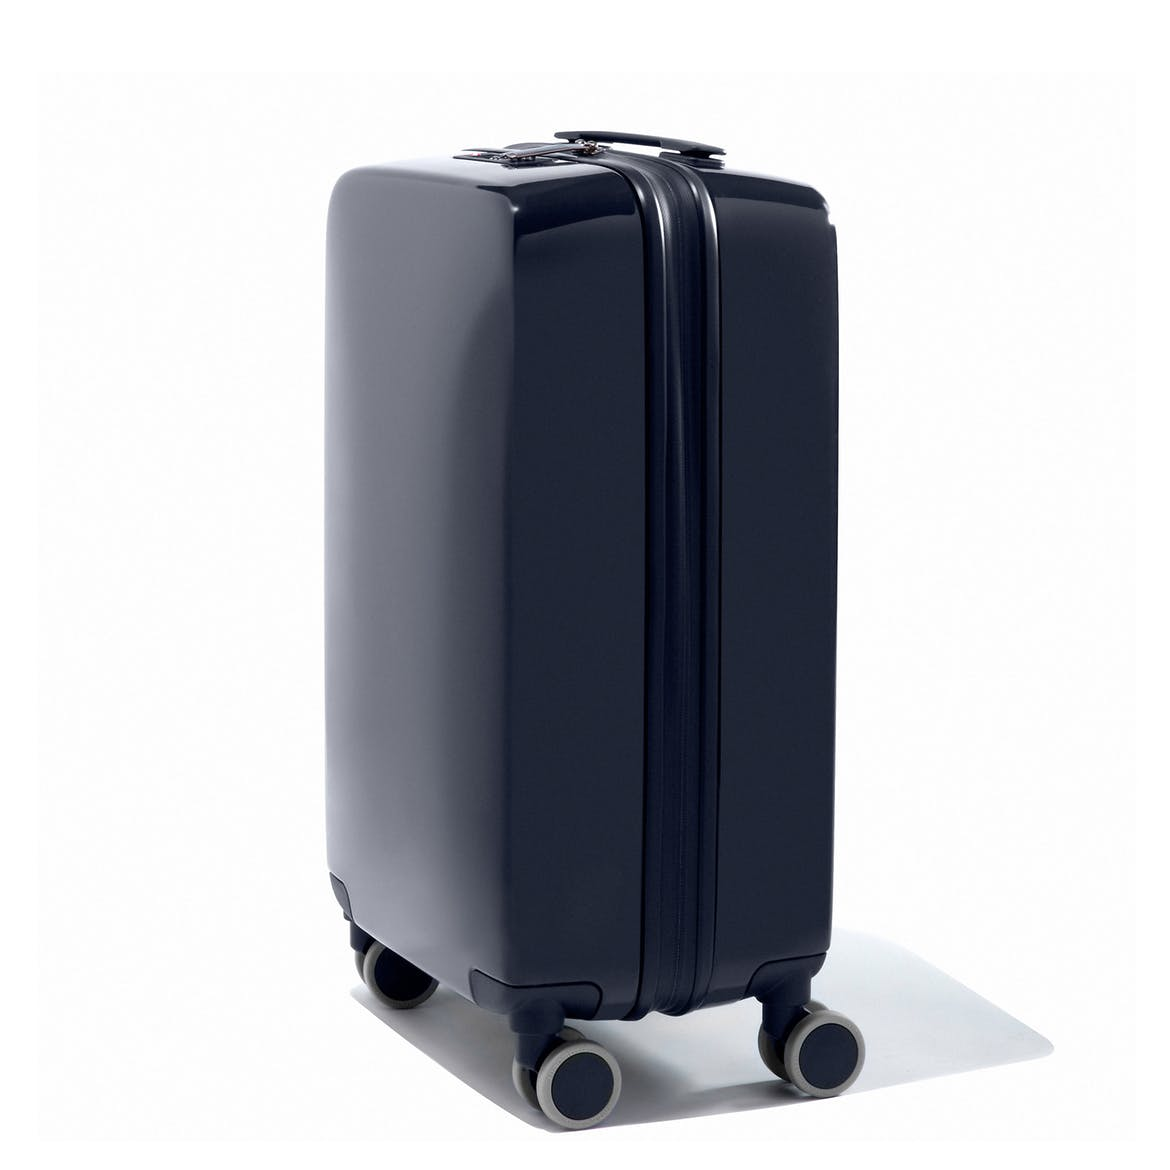 raden a22 carry luggage